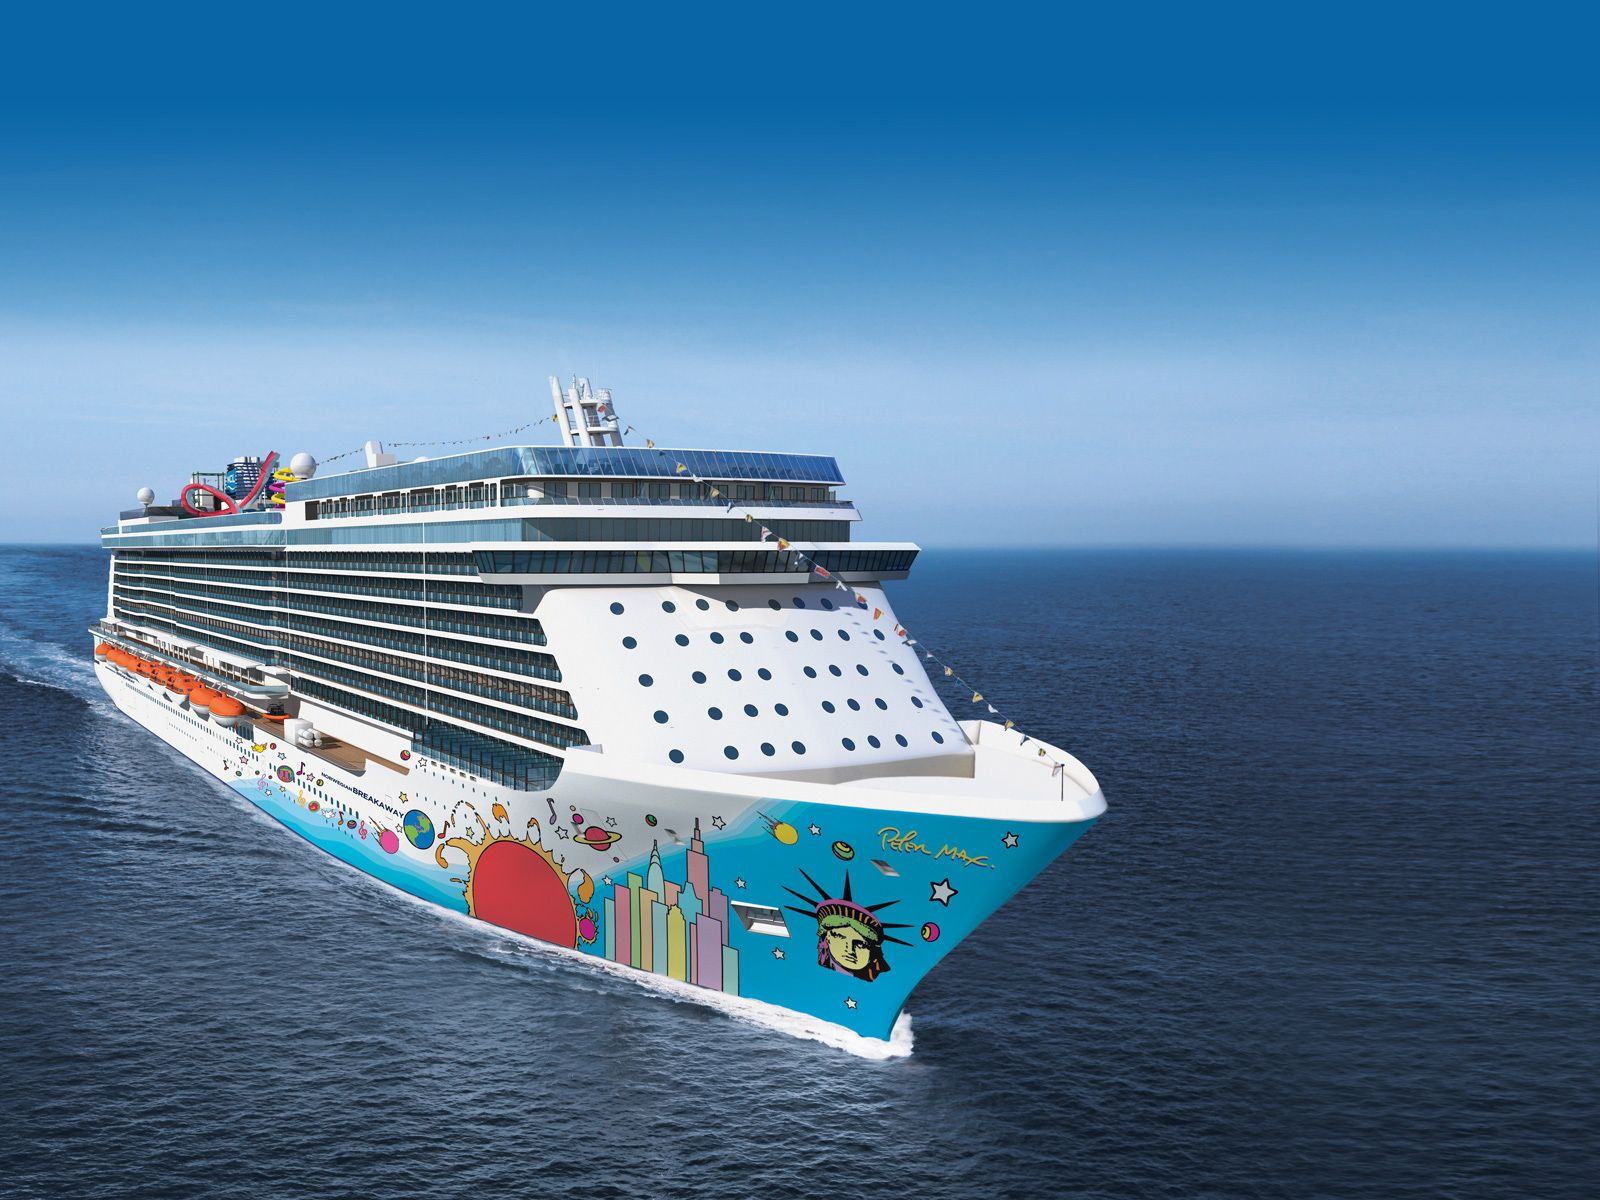 What are some ports on the Norwegian Cruise Lines from Boston to Bermuda?